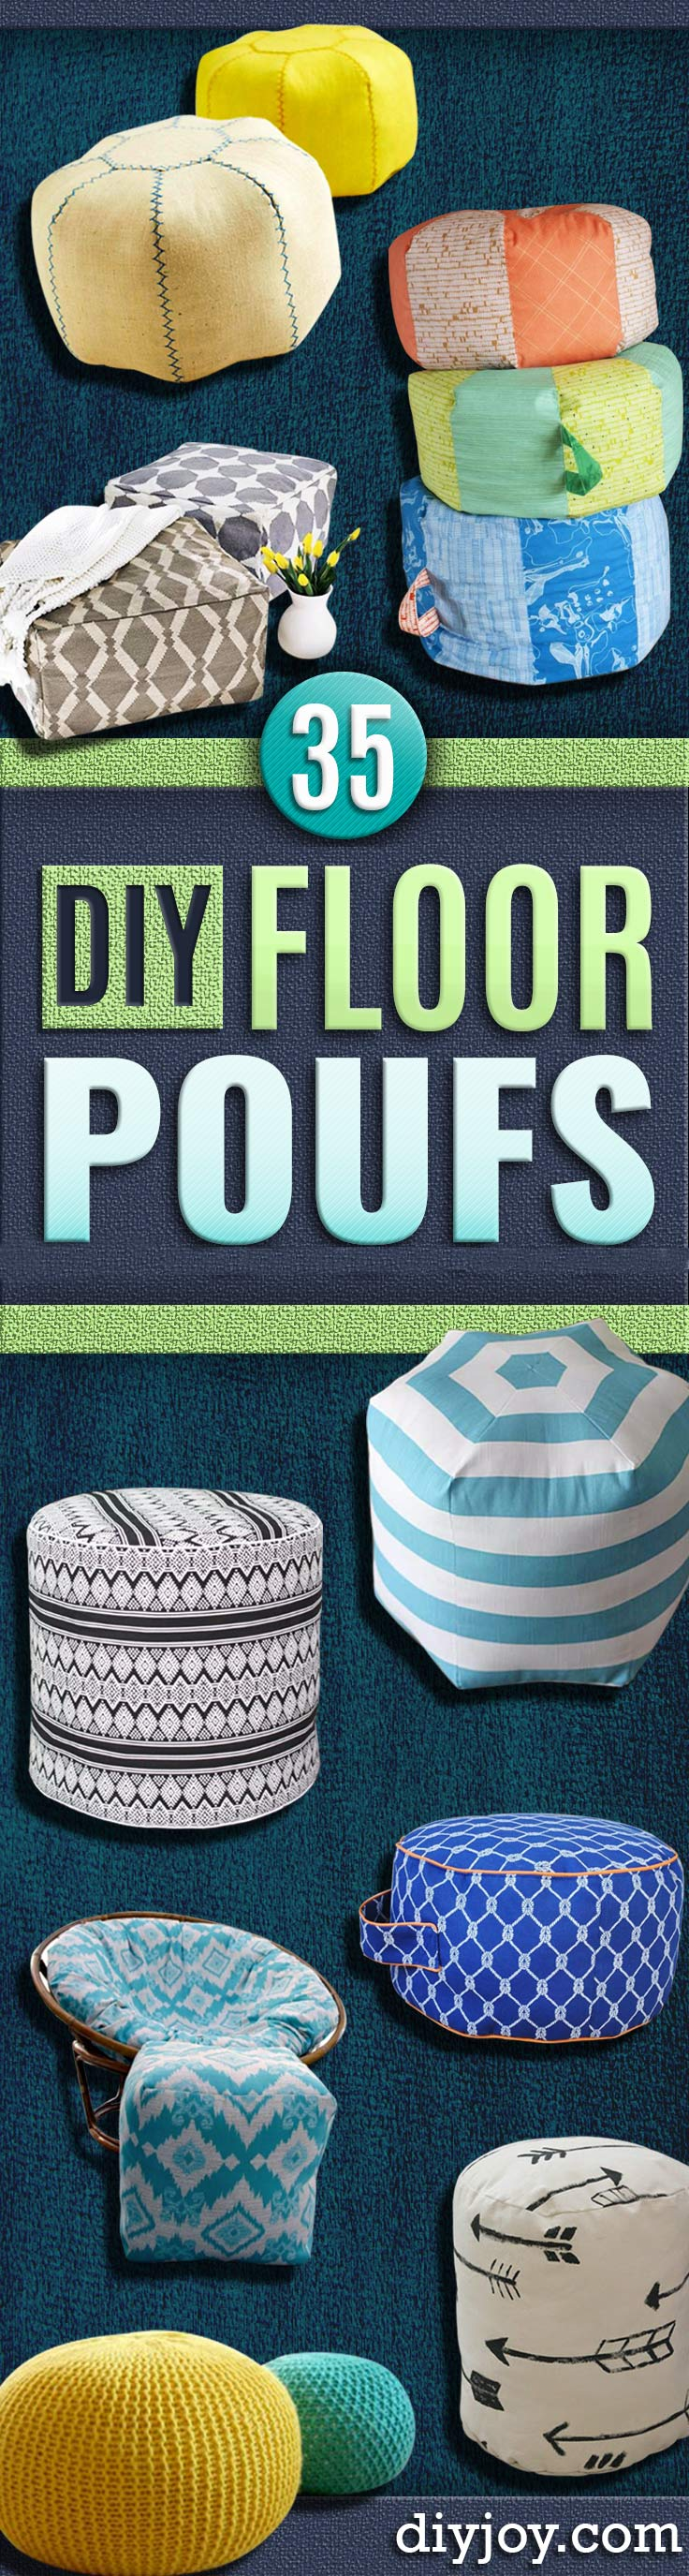 32 Fabulous DIY Poufs Your Living Room Needs Right Now!